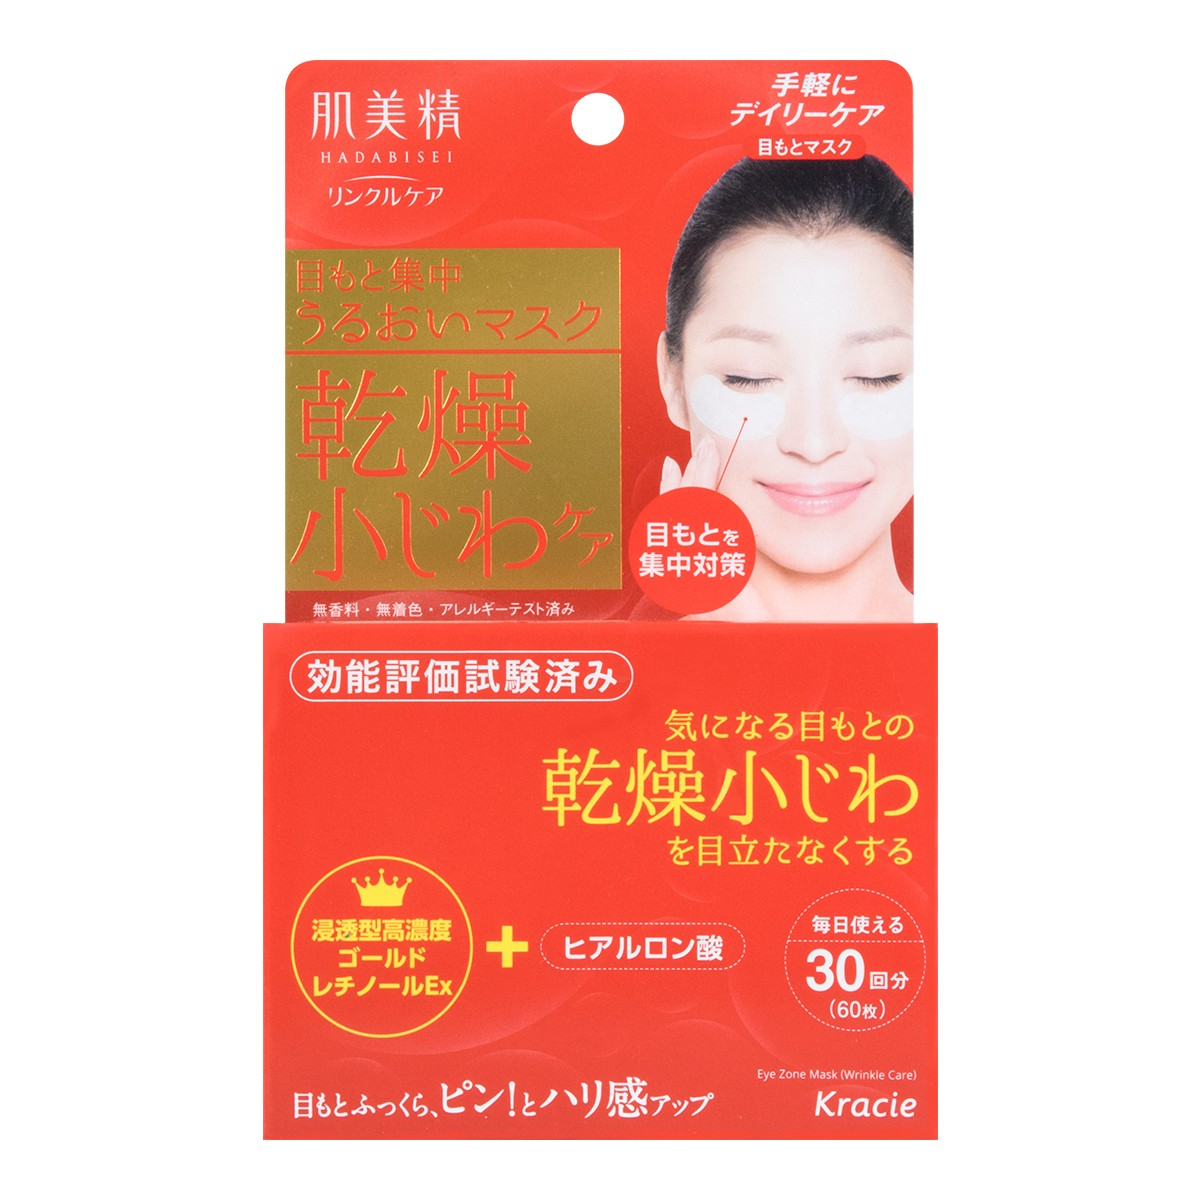 KRACIE HADABISEI Eye Zone Mask 30 Pairs